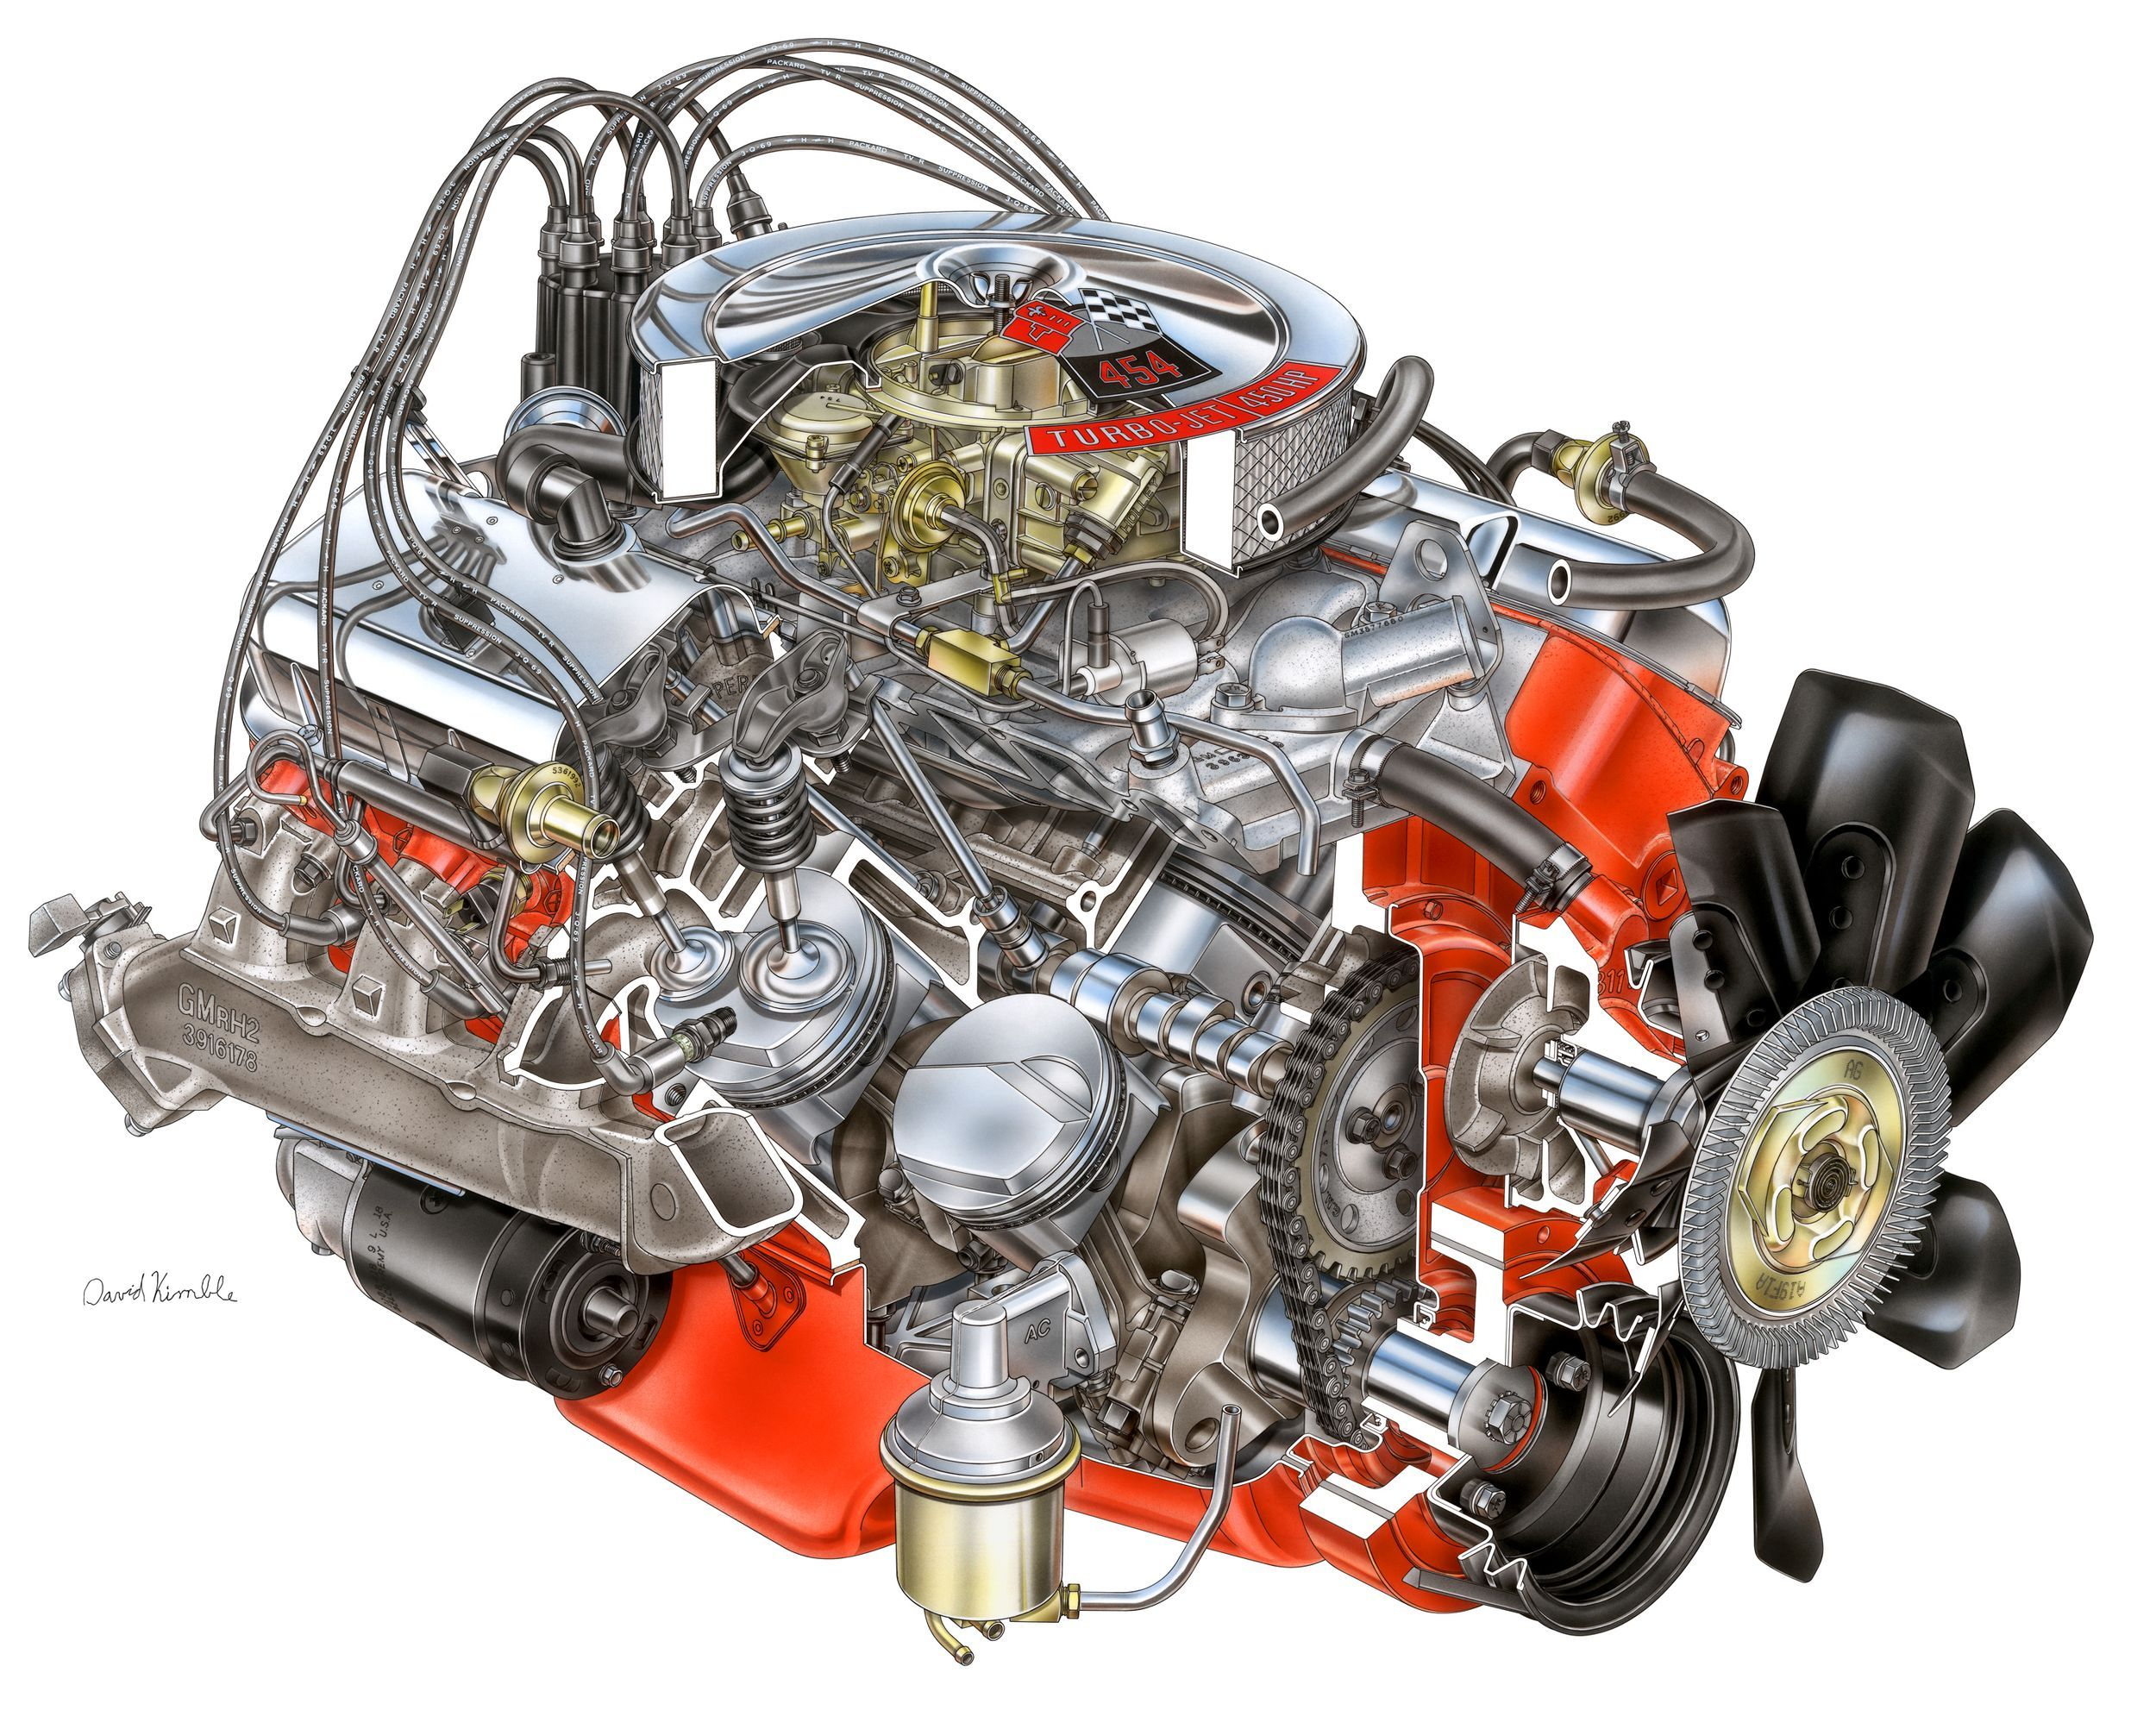 hight resolution of chevrolet ls6 454 450hp engine cutaway